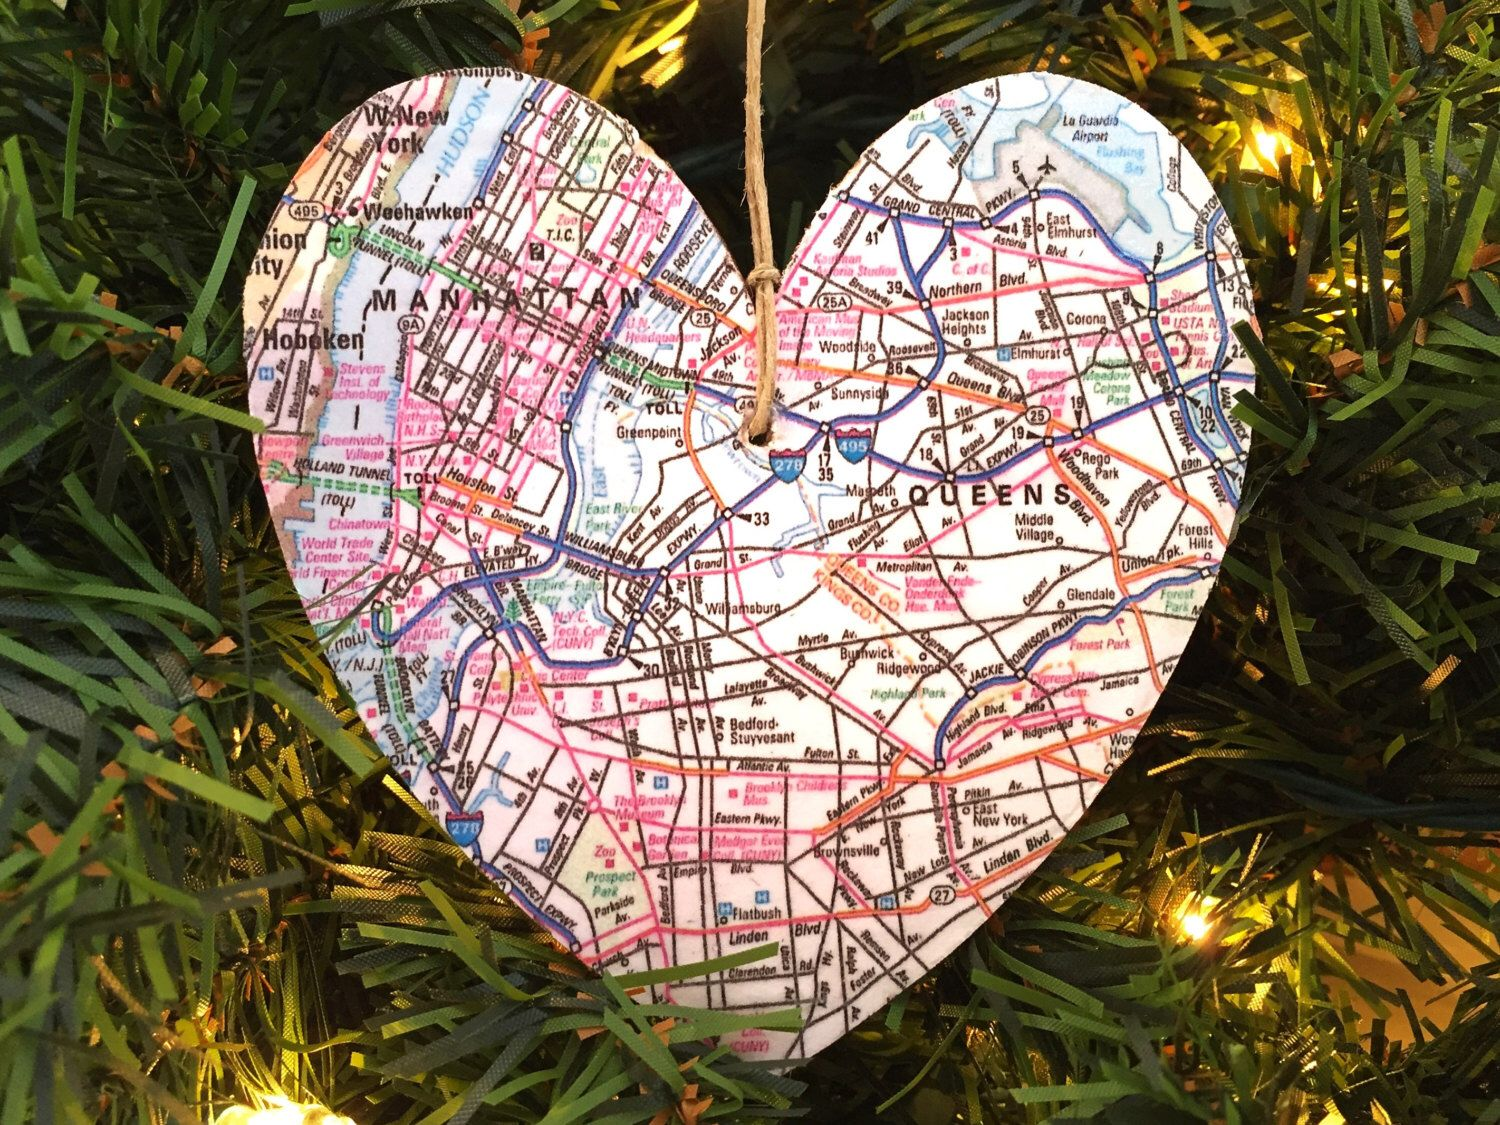 New York City Map Ornament, NYC Map Ornament, New York City ...